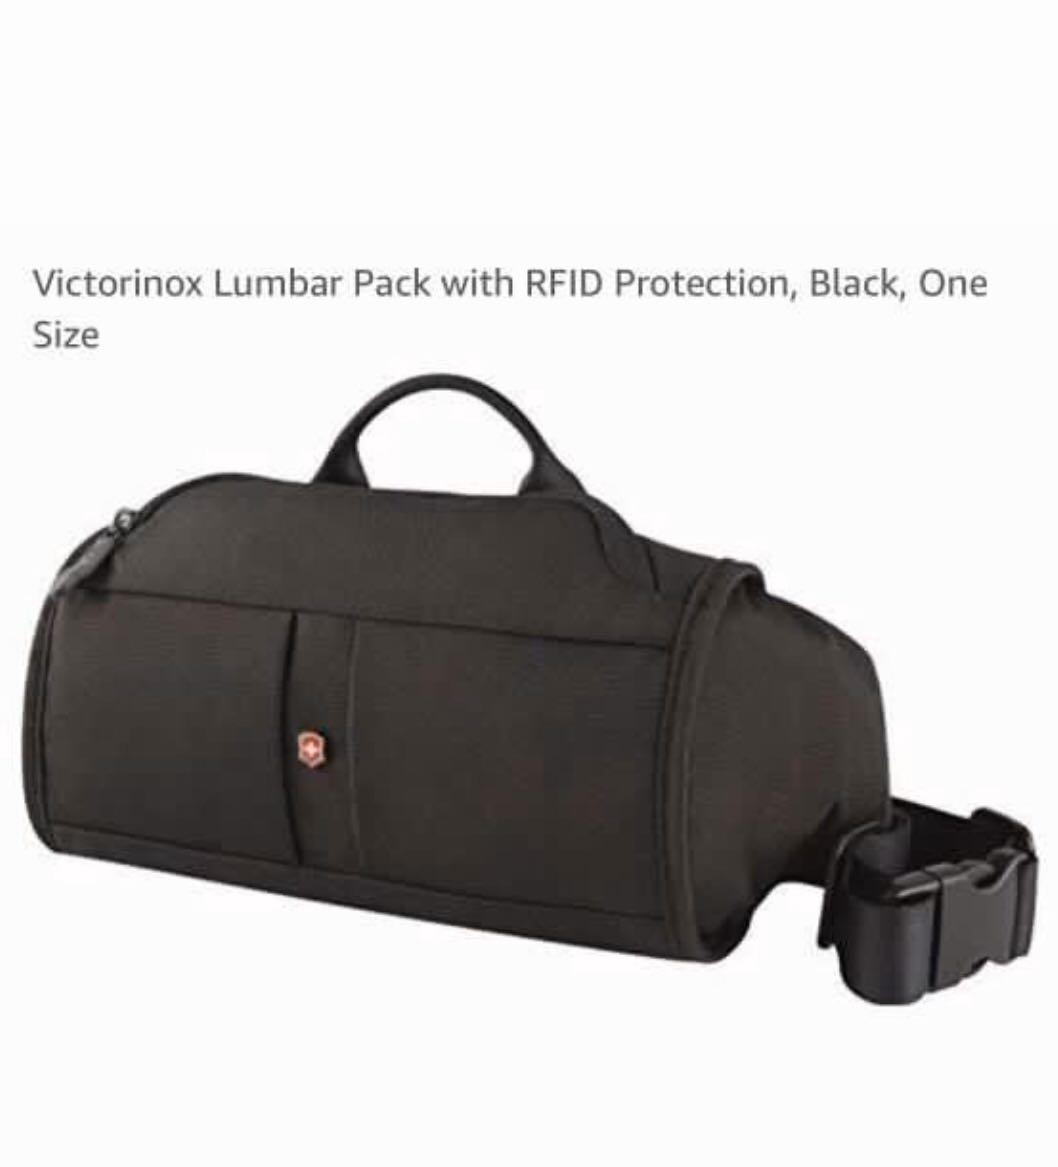 Victorinox. Lumbar Pack with RFID Protection. AUTHENTIC Red zipper tab signifies RFID protected pocket. Adjustable strap. AUTH ENTIC